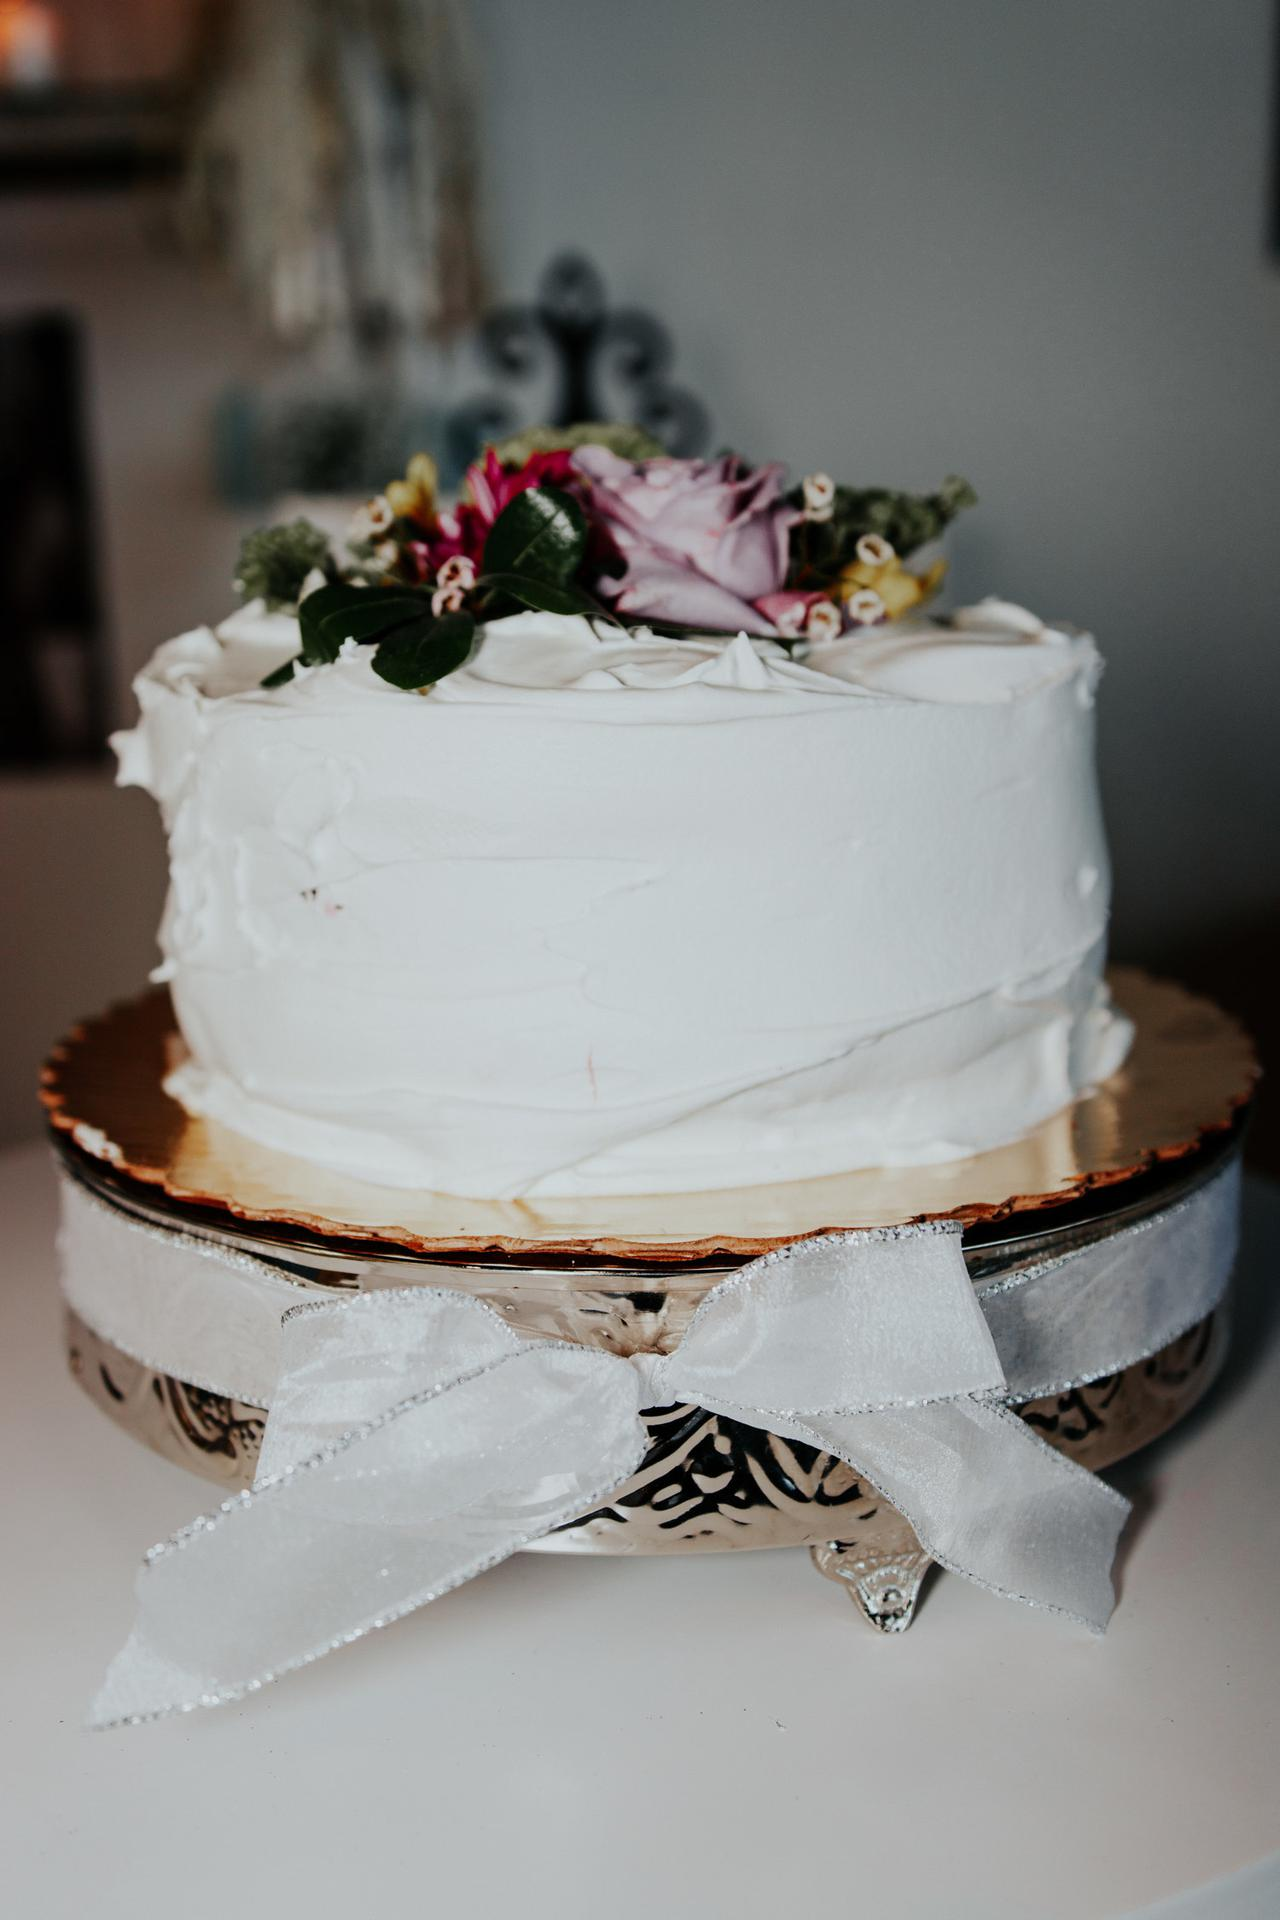 Ever After provides tasty and beautiful wedding cake services